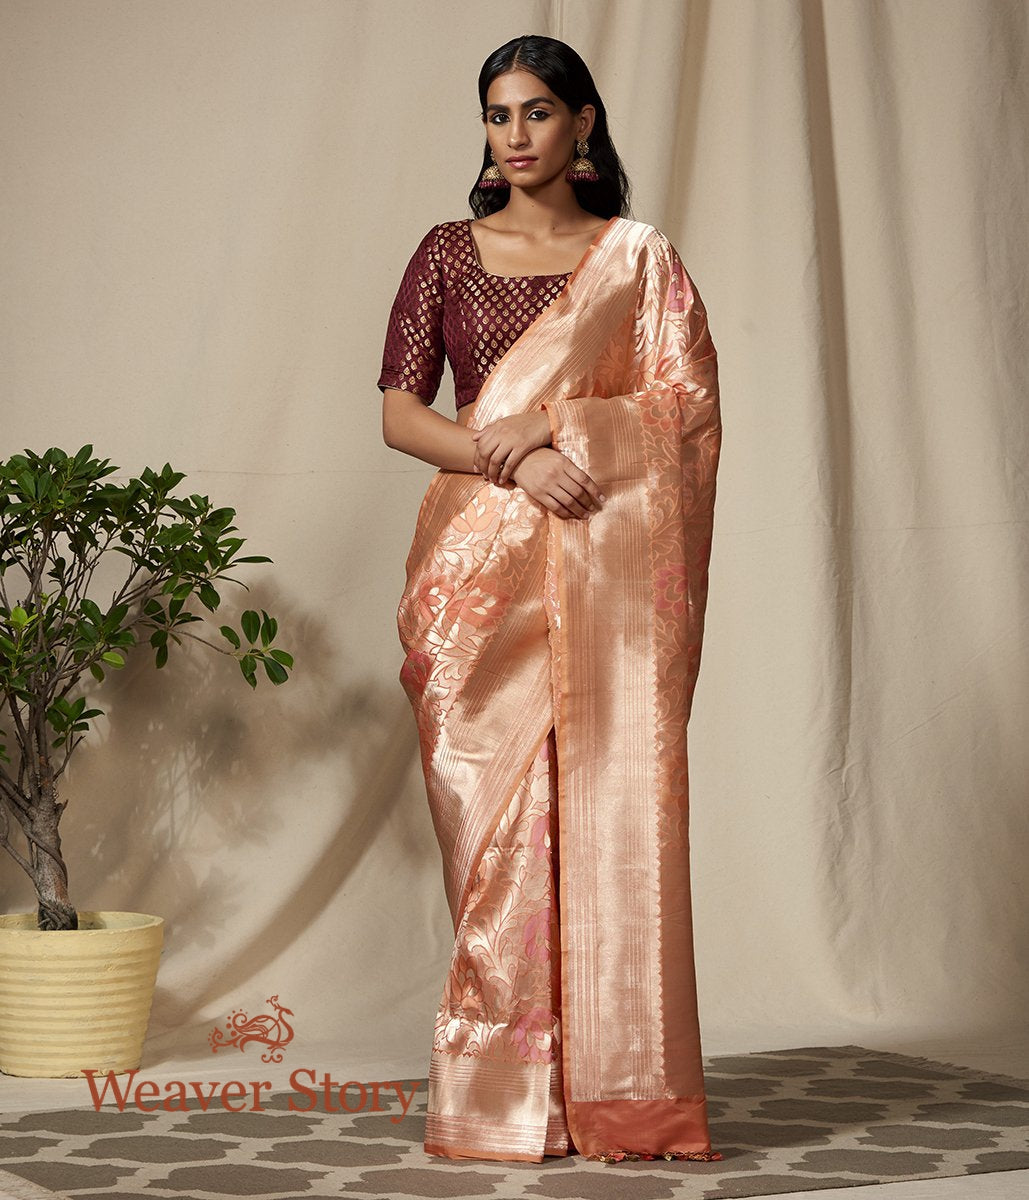 Handwoven Peach Floral Zari Jaal Saree with Meenakari